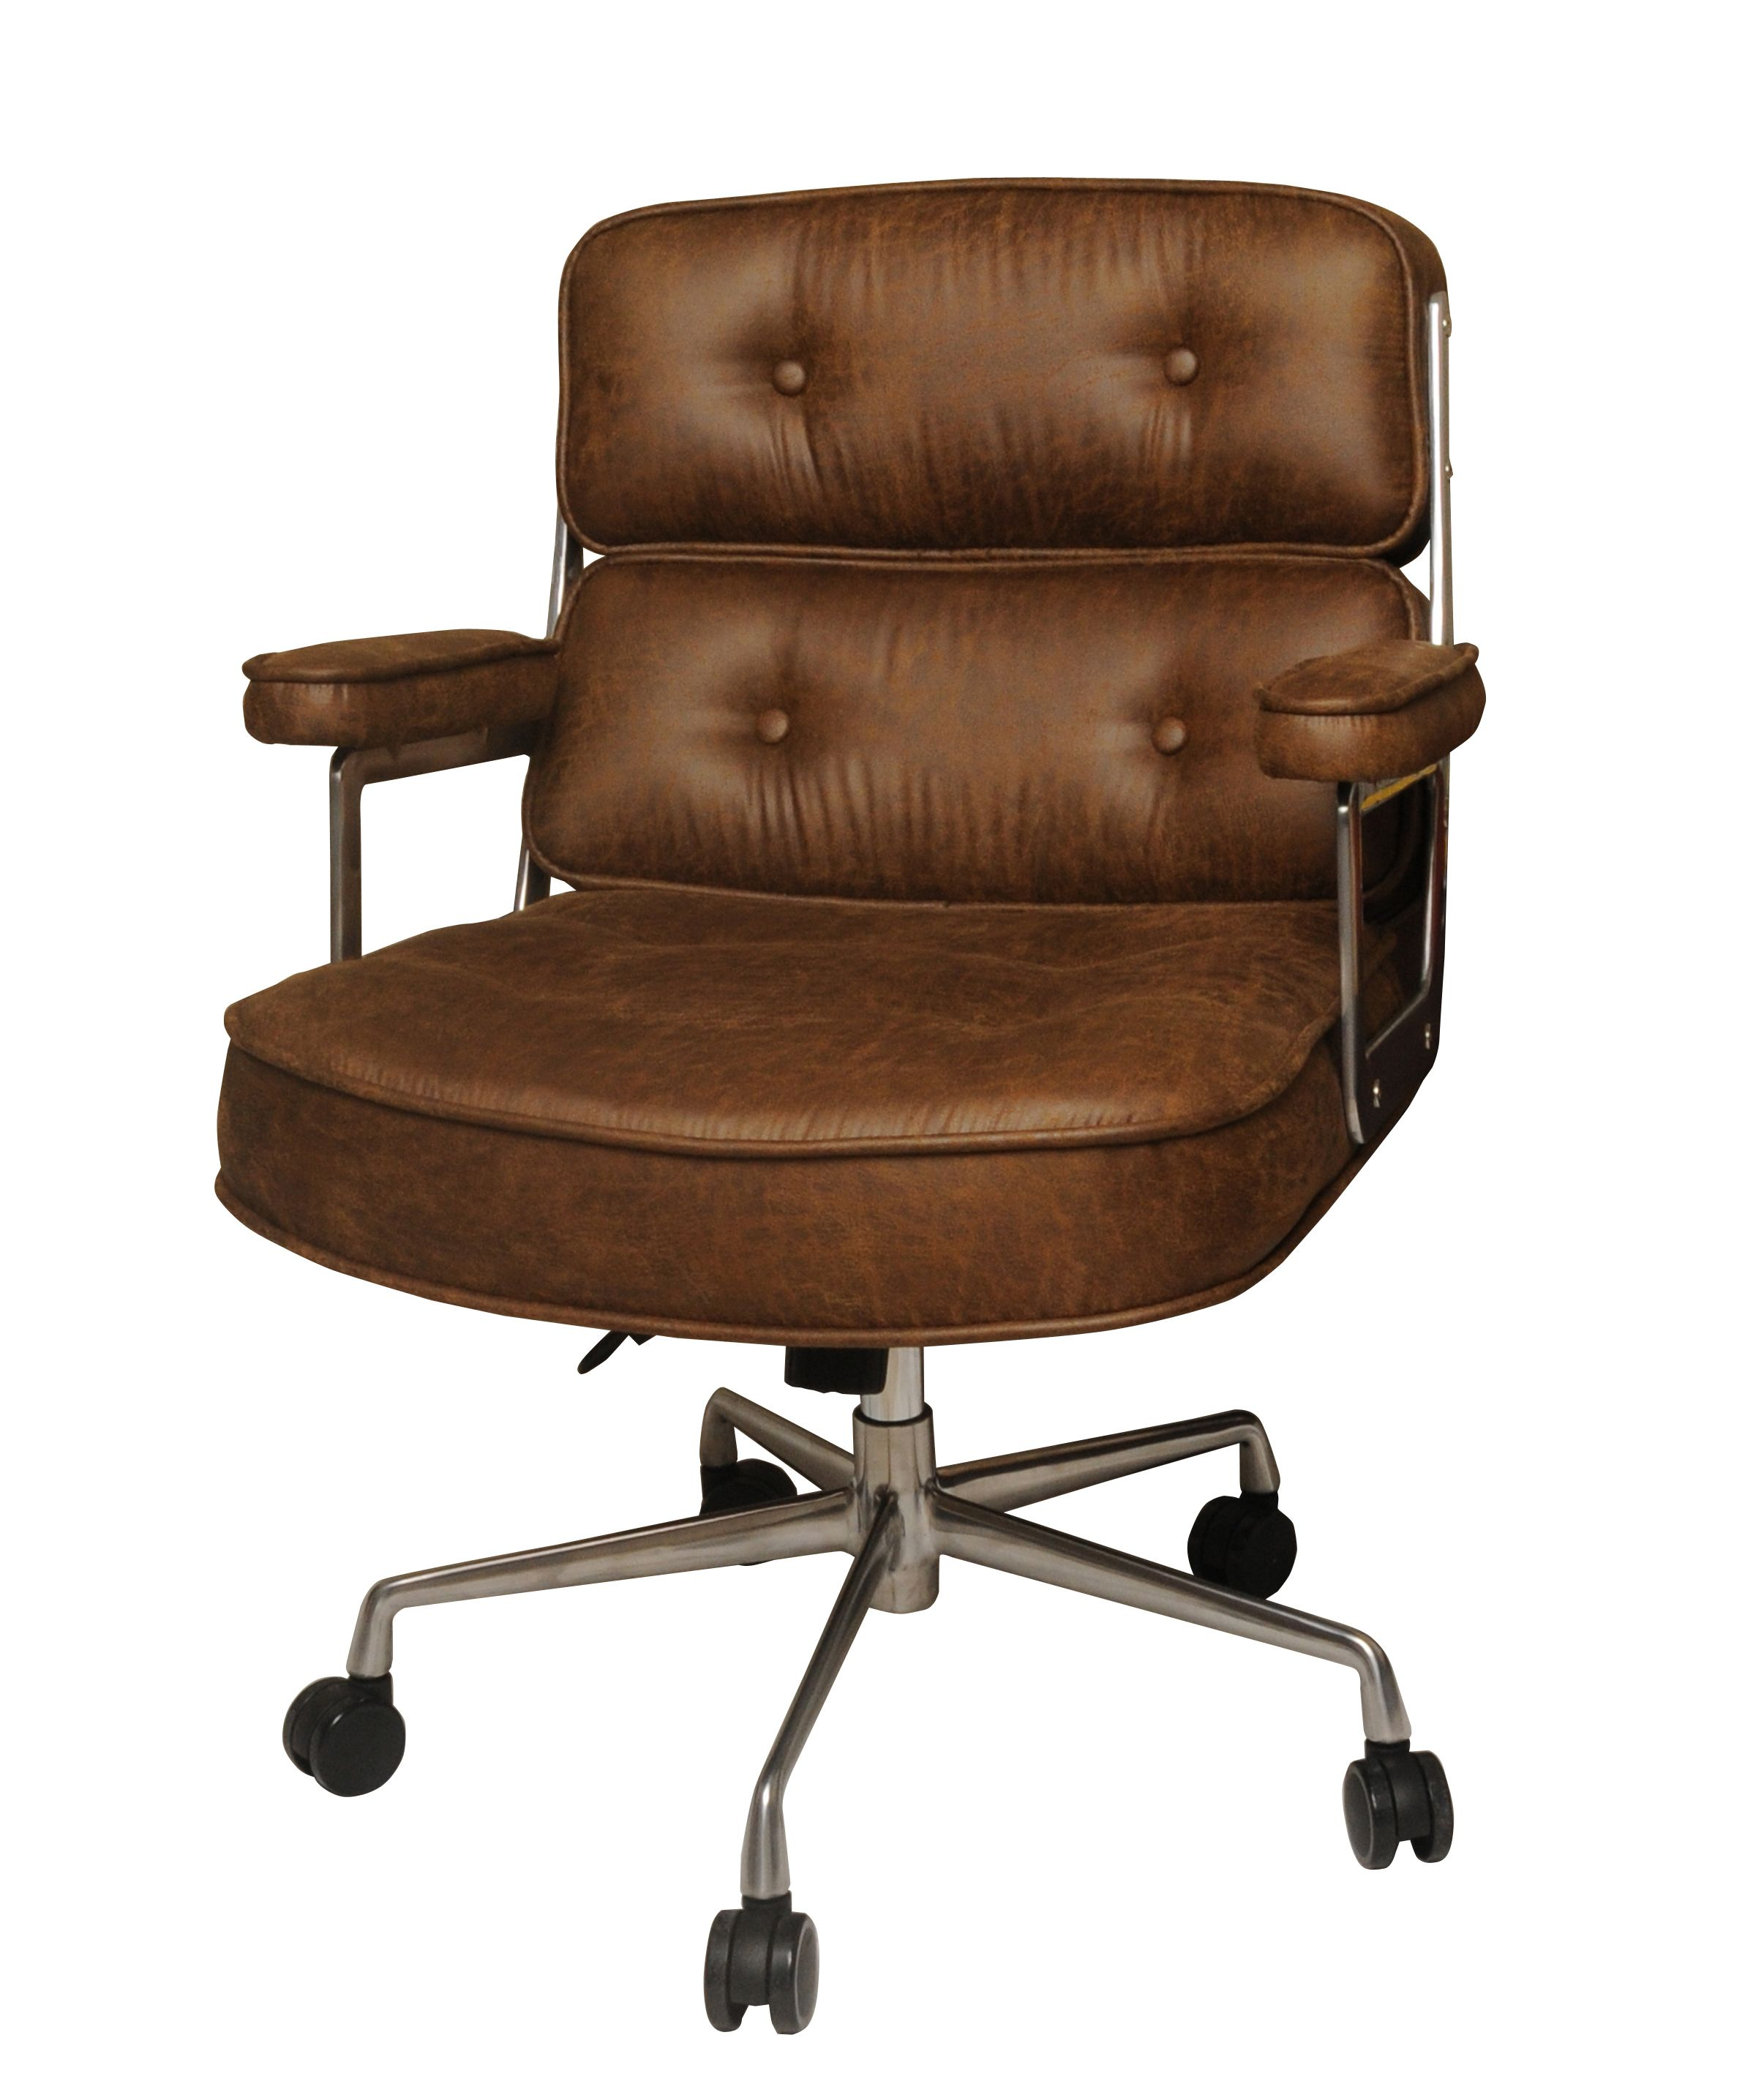 Cloth Office Chairs Outdoor Patio Target Fred Fabric Chair In Nubuck Brown Npd Space New